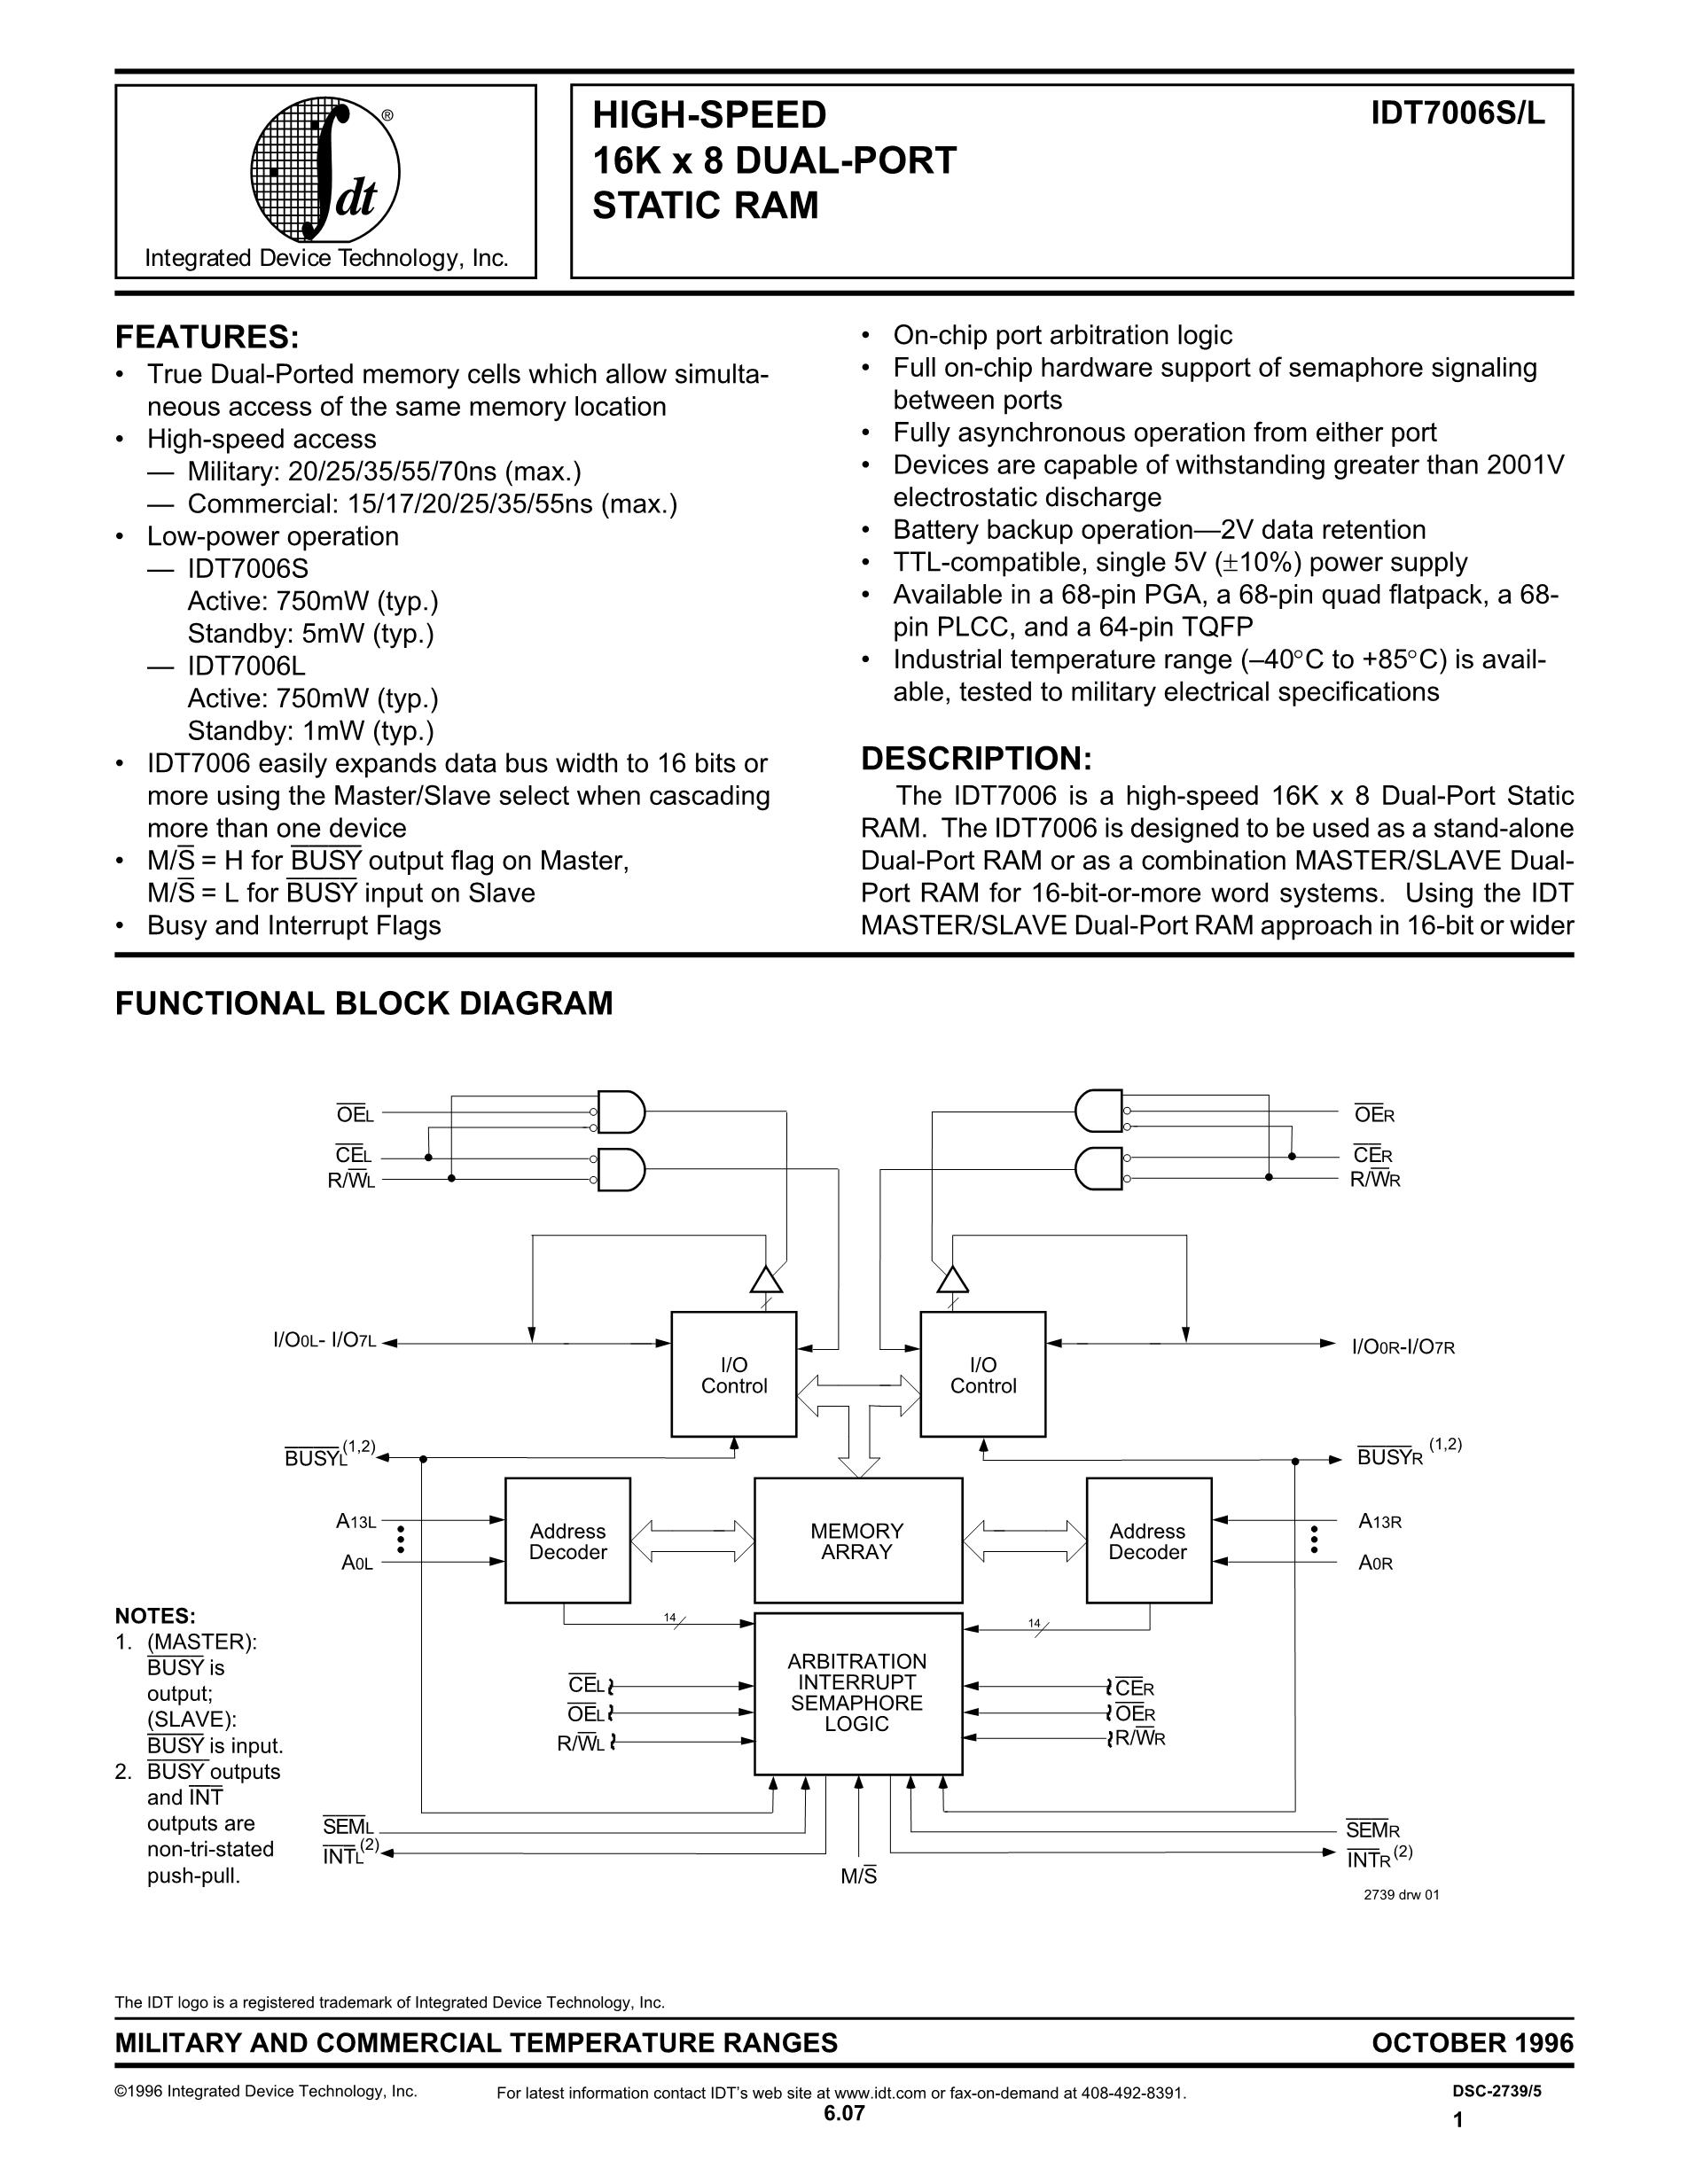 IDT74FCT374CTSO's pdf picture 1